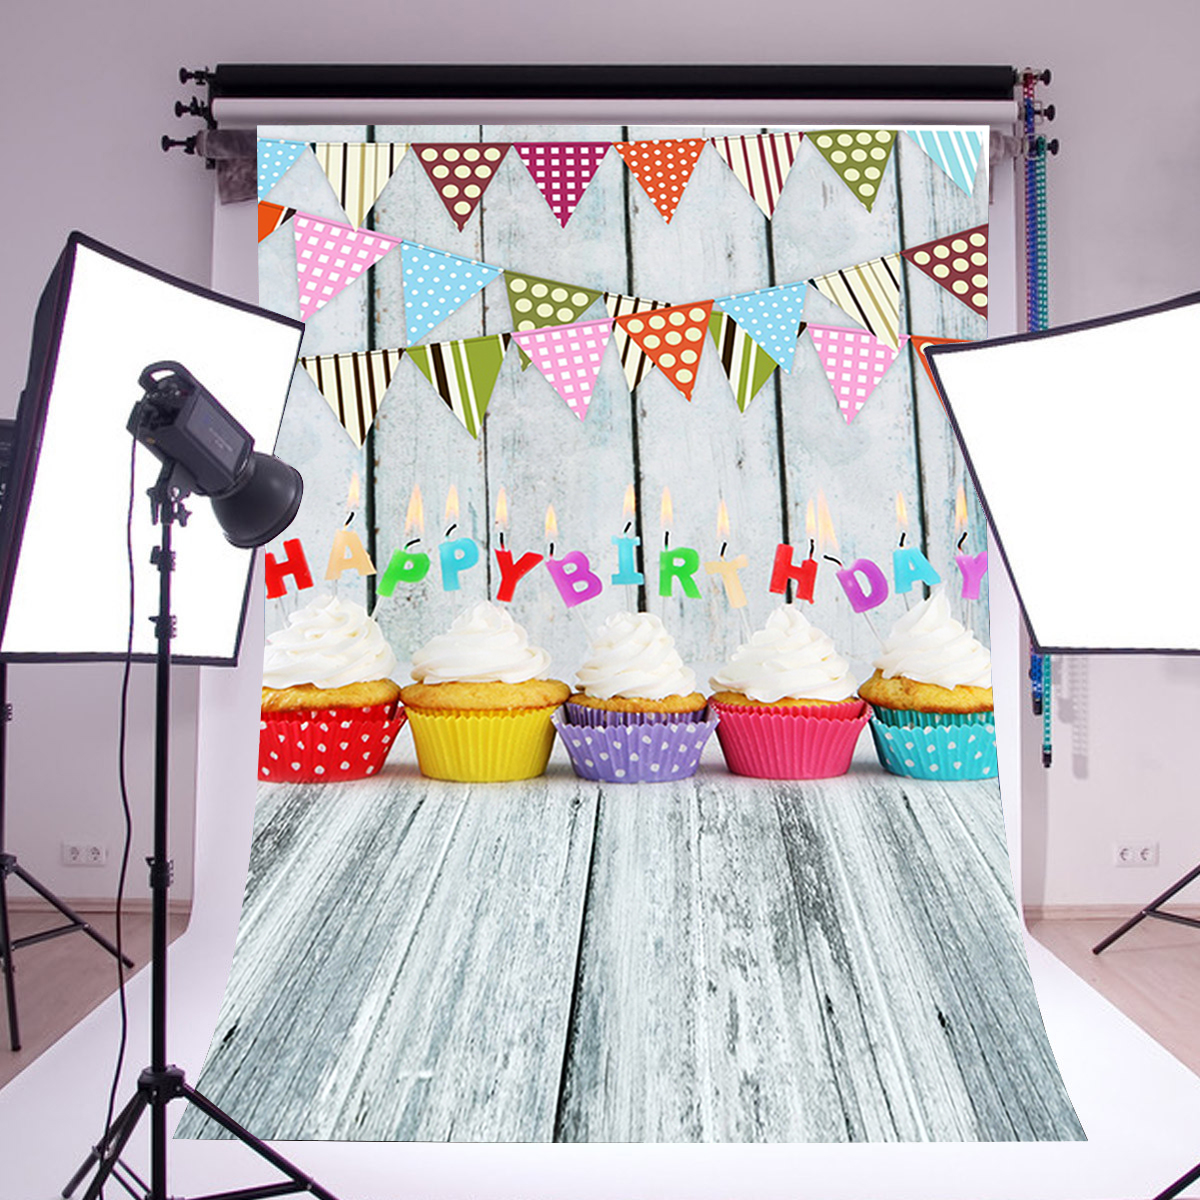 3x5FT Birthday Party Photography Backdrop Photo Studio Background